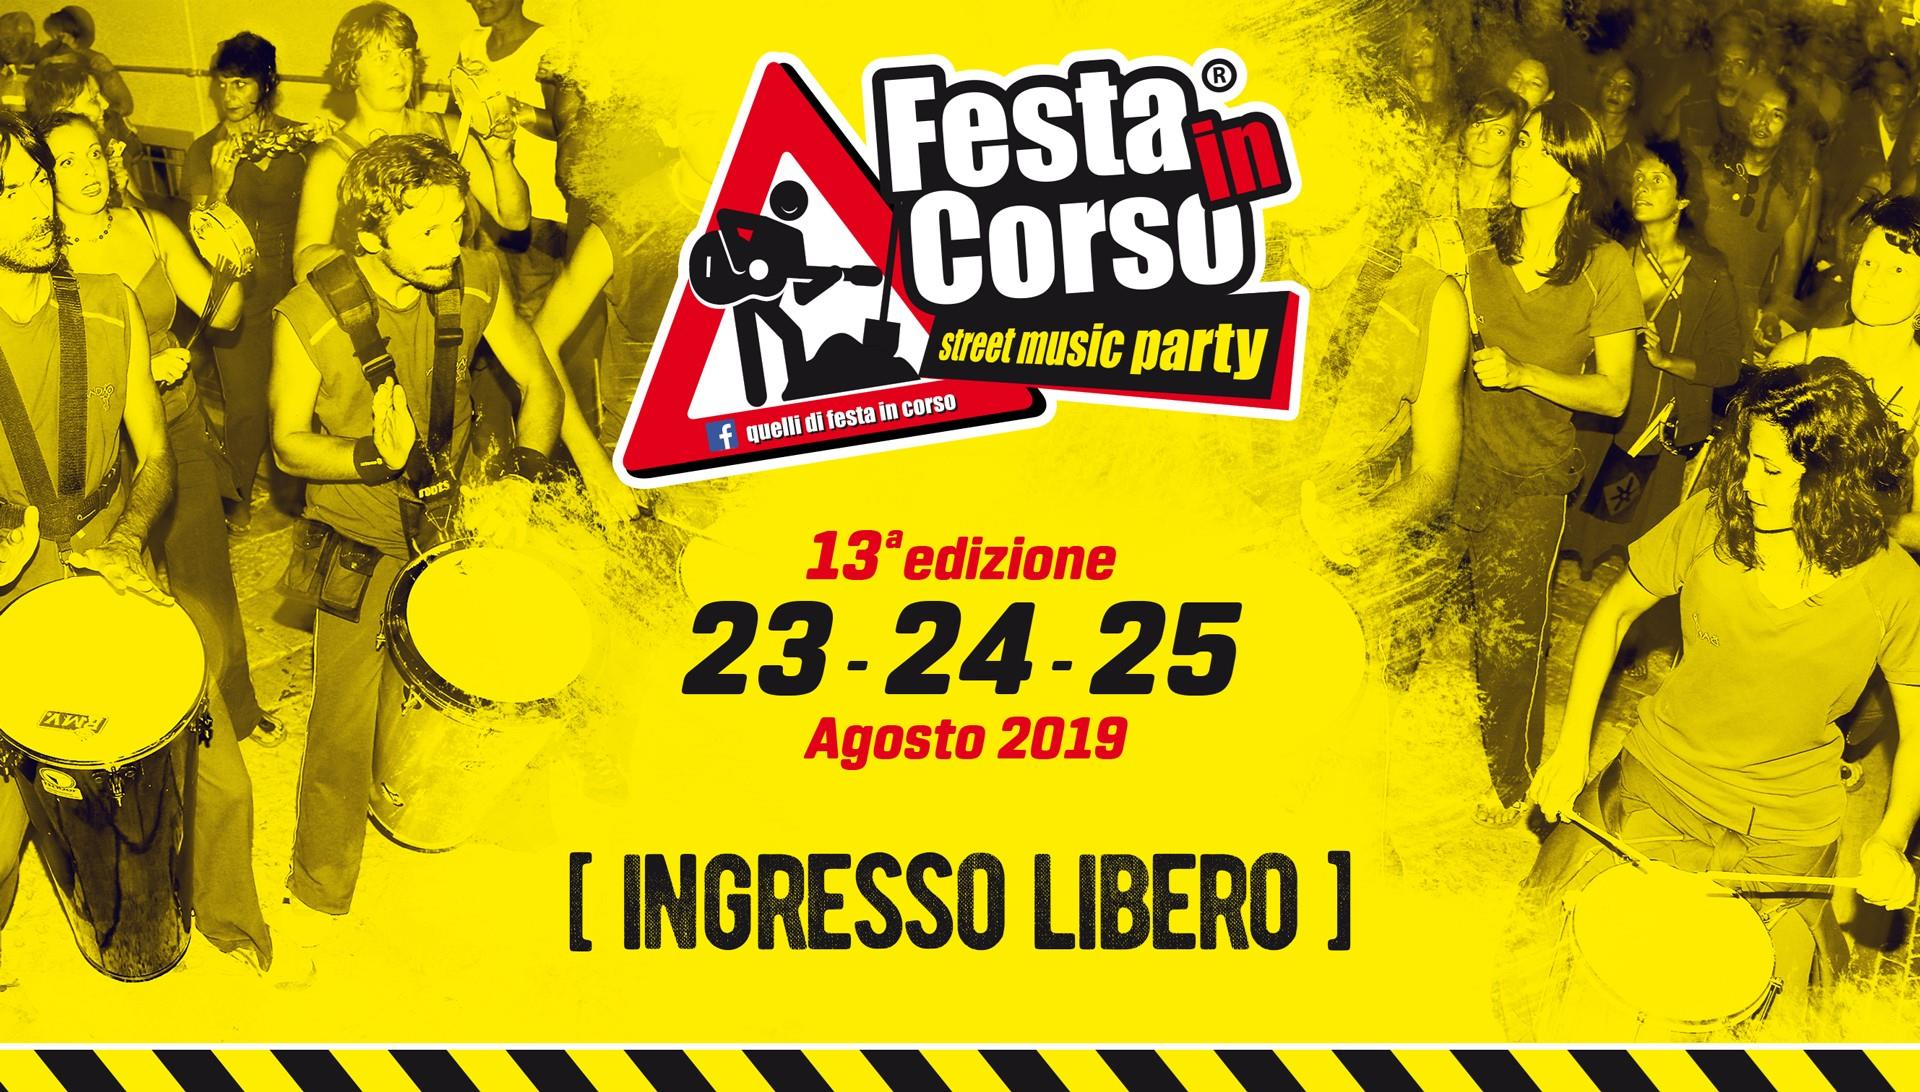 FESTA IN CORSO - STREET MUSIC PARTY - CITTà SANT'ANGELO